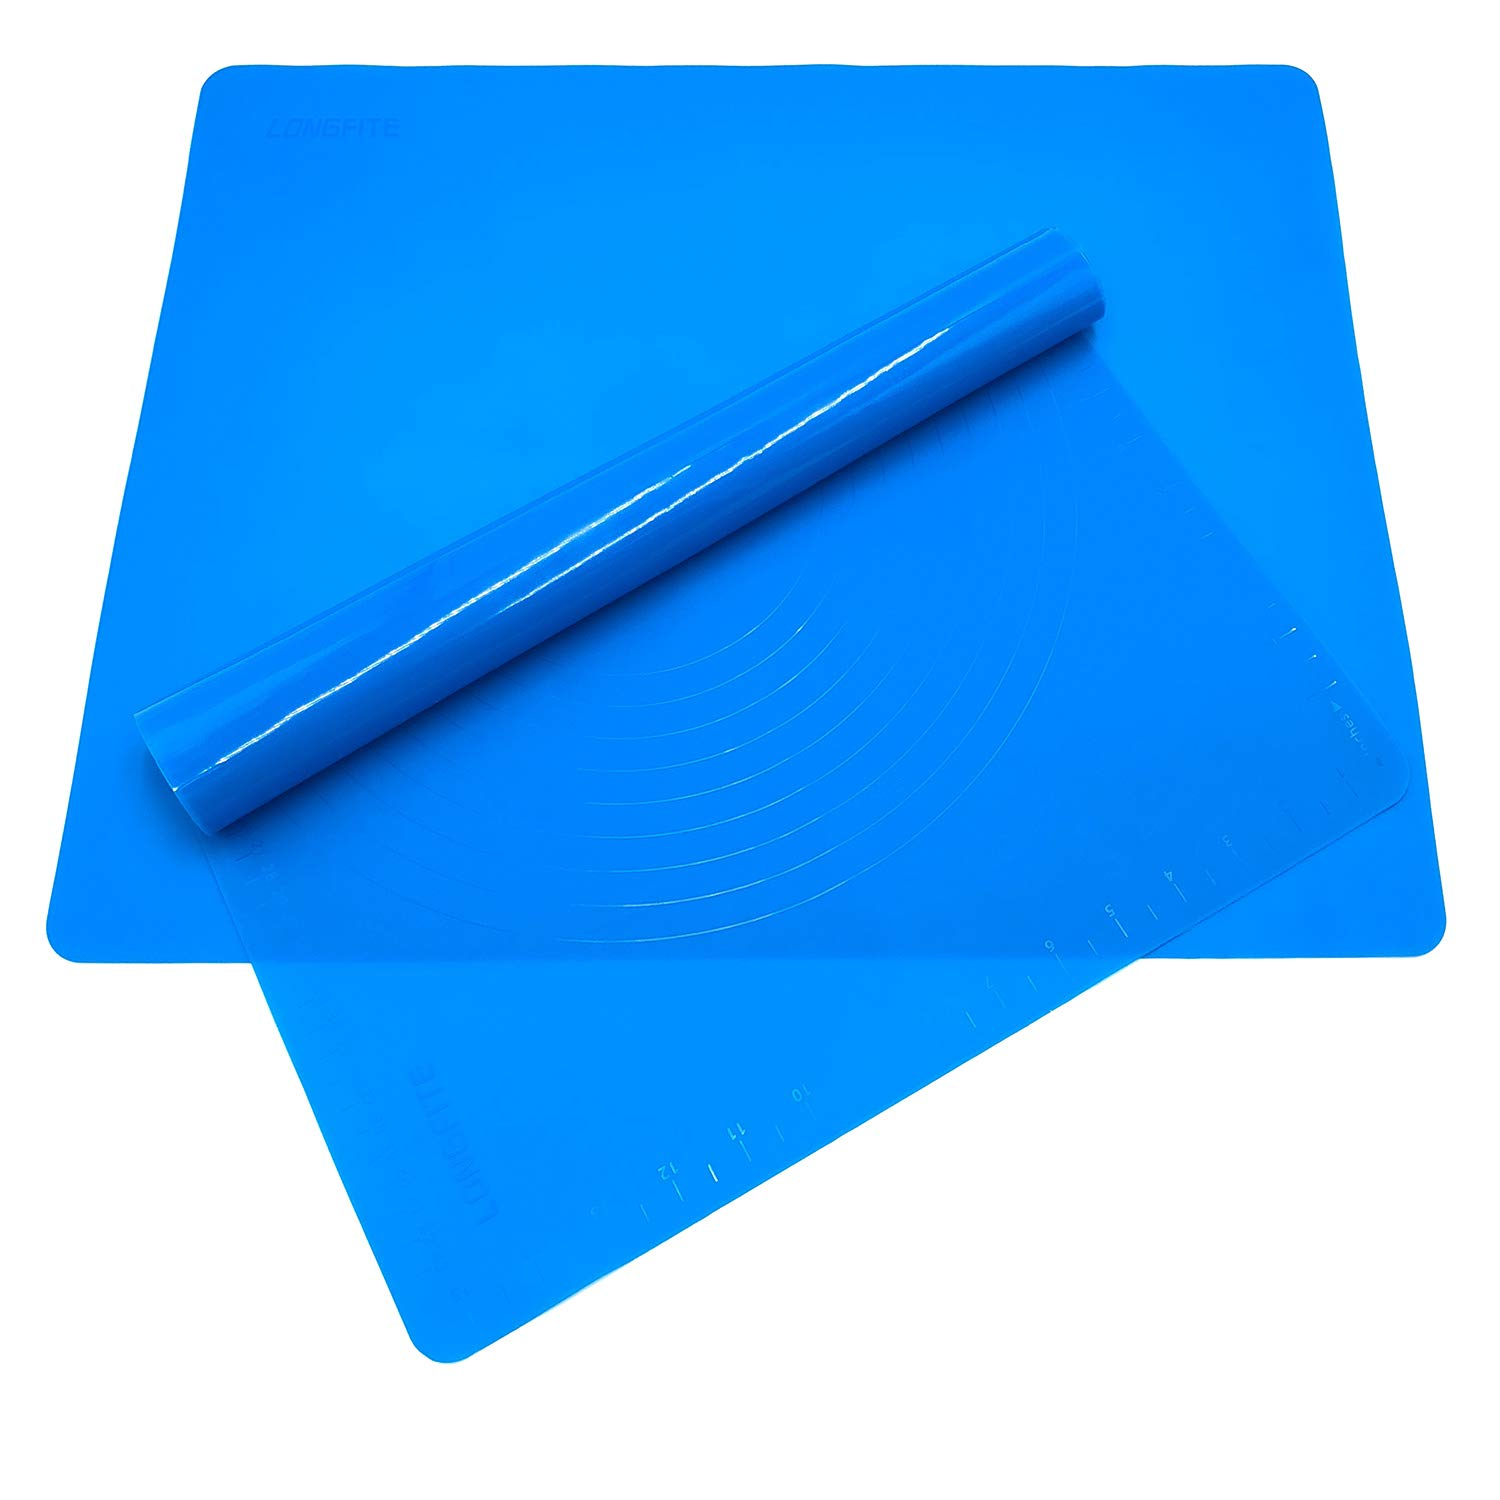 Silicone Baking Mats for Dough Rolling Pastry Fondant Mat Large Nonstick and Nonslip, Countertop Protector, Dining Table Mat and Placemat 20'' by 16''(Blue 2 Pack) LONGFITE